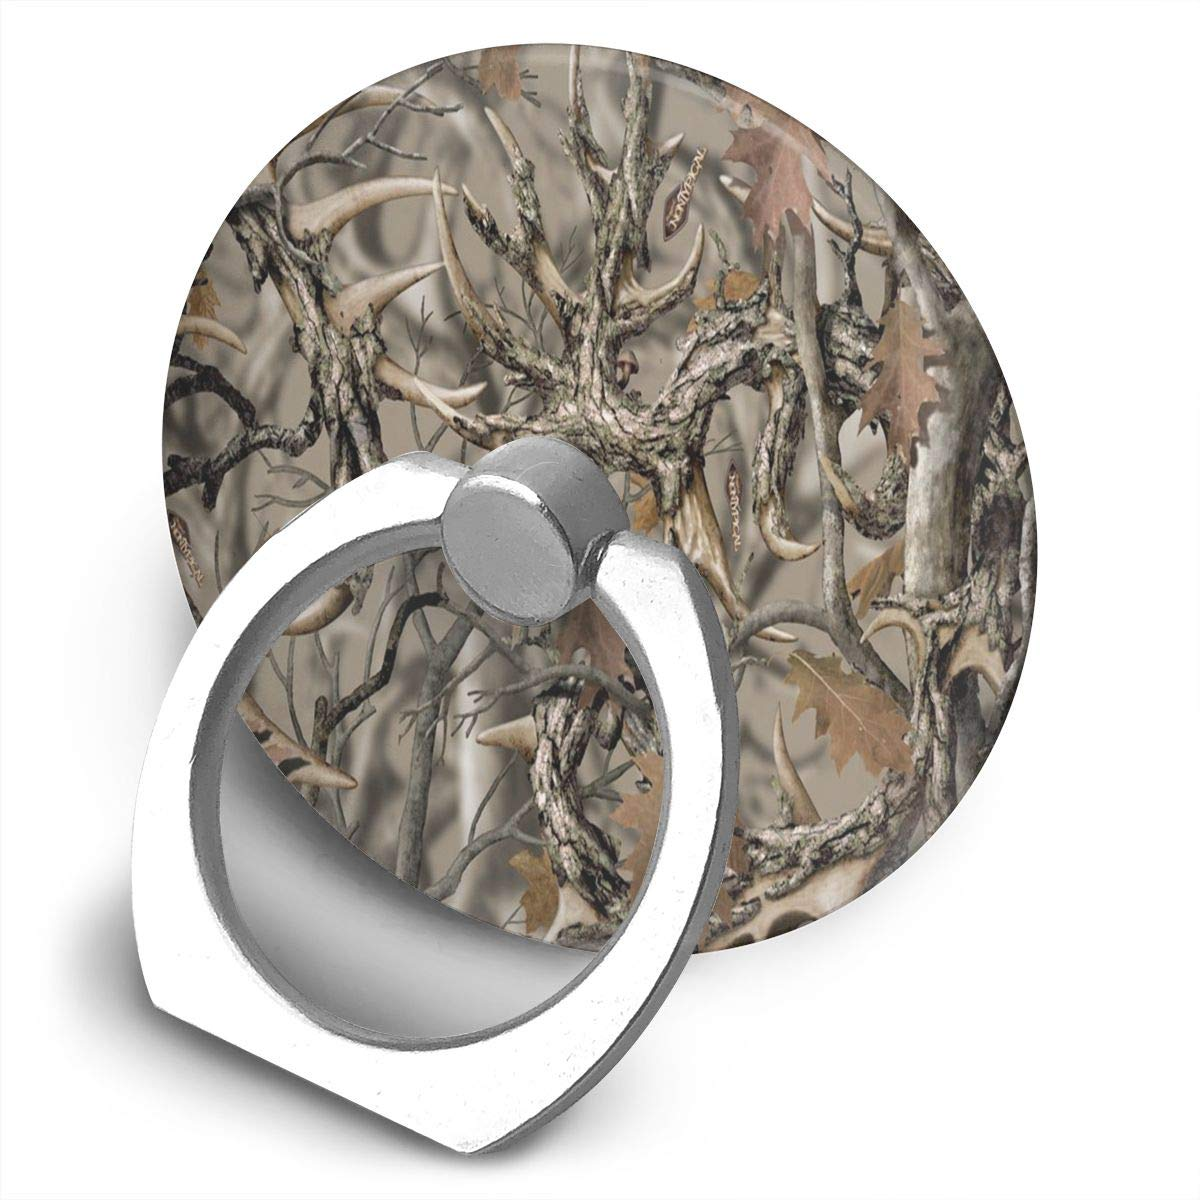 Amazon com: Realtree Camo Phone Ring Stand 360 Degree